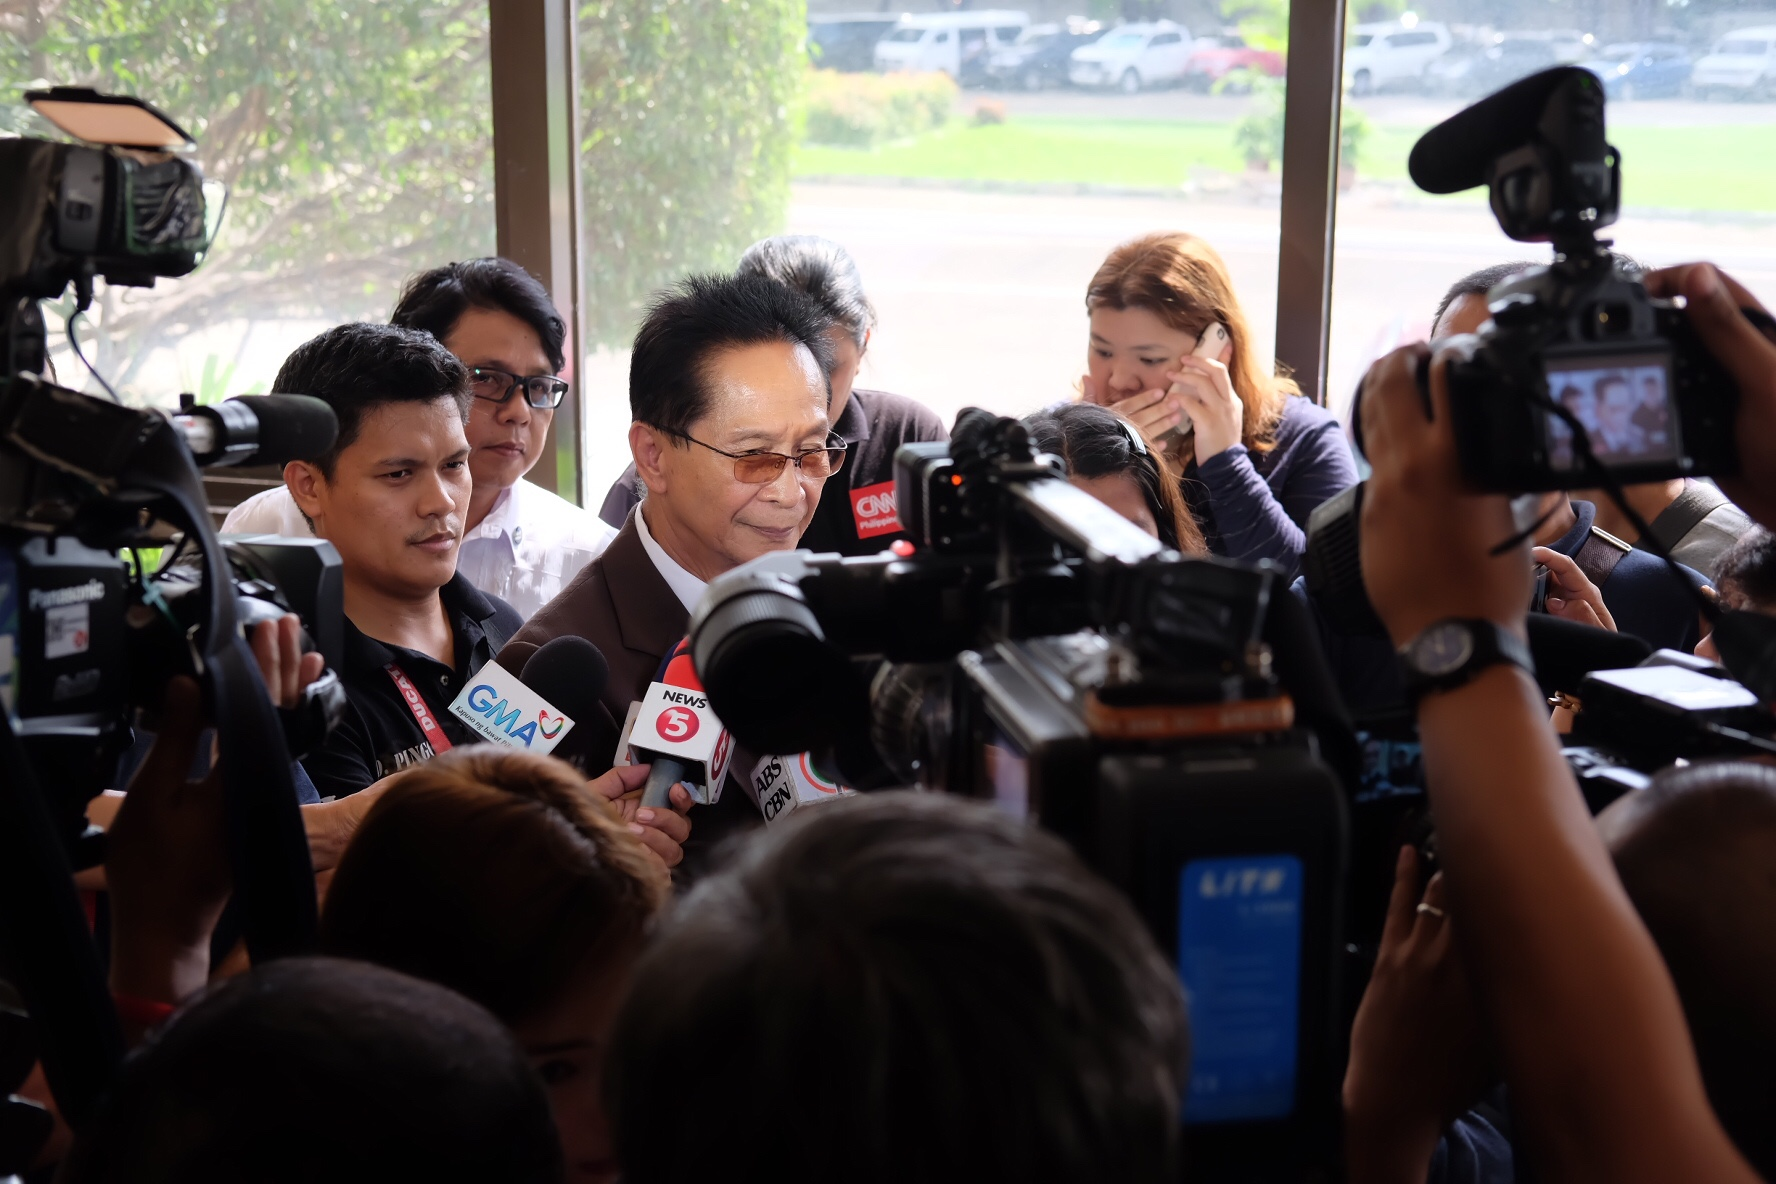 """""""Even if he was a drug runner, you cannot just kill somebody like that,"""" Panelo said in an interview with state-run Radyo Pilipinas. Philstar.com/Denison Rey Dalupang, file"""